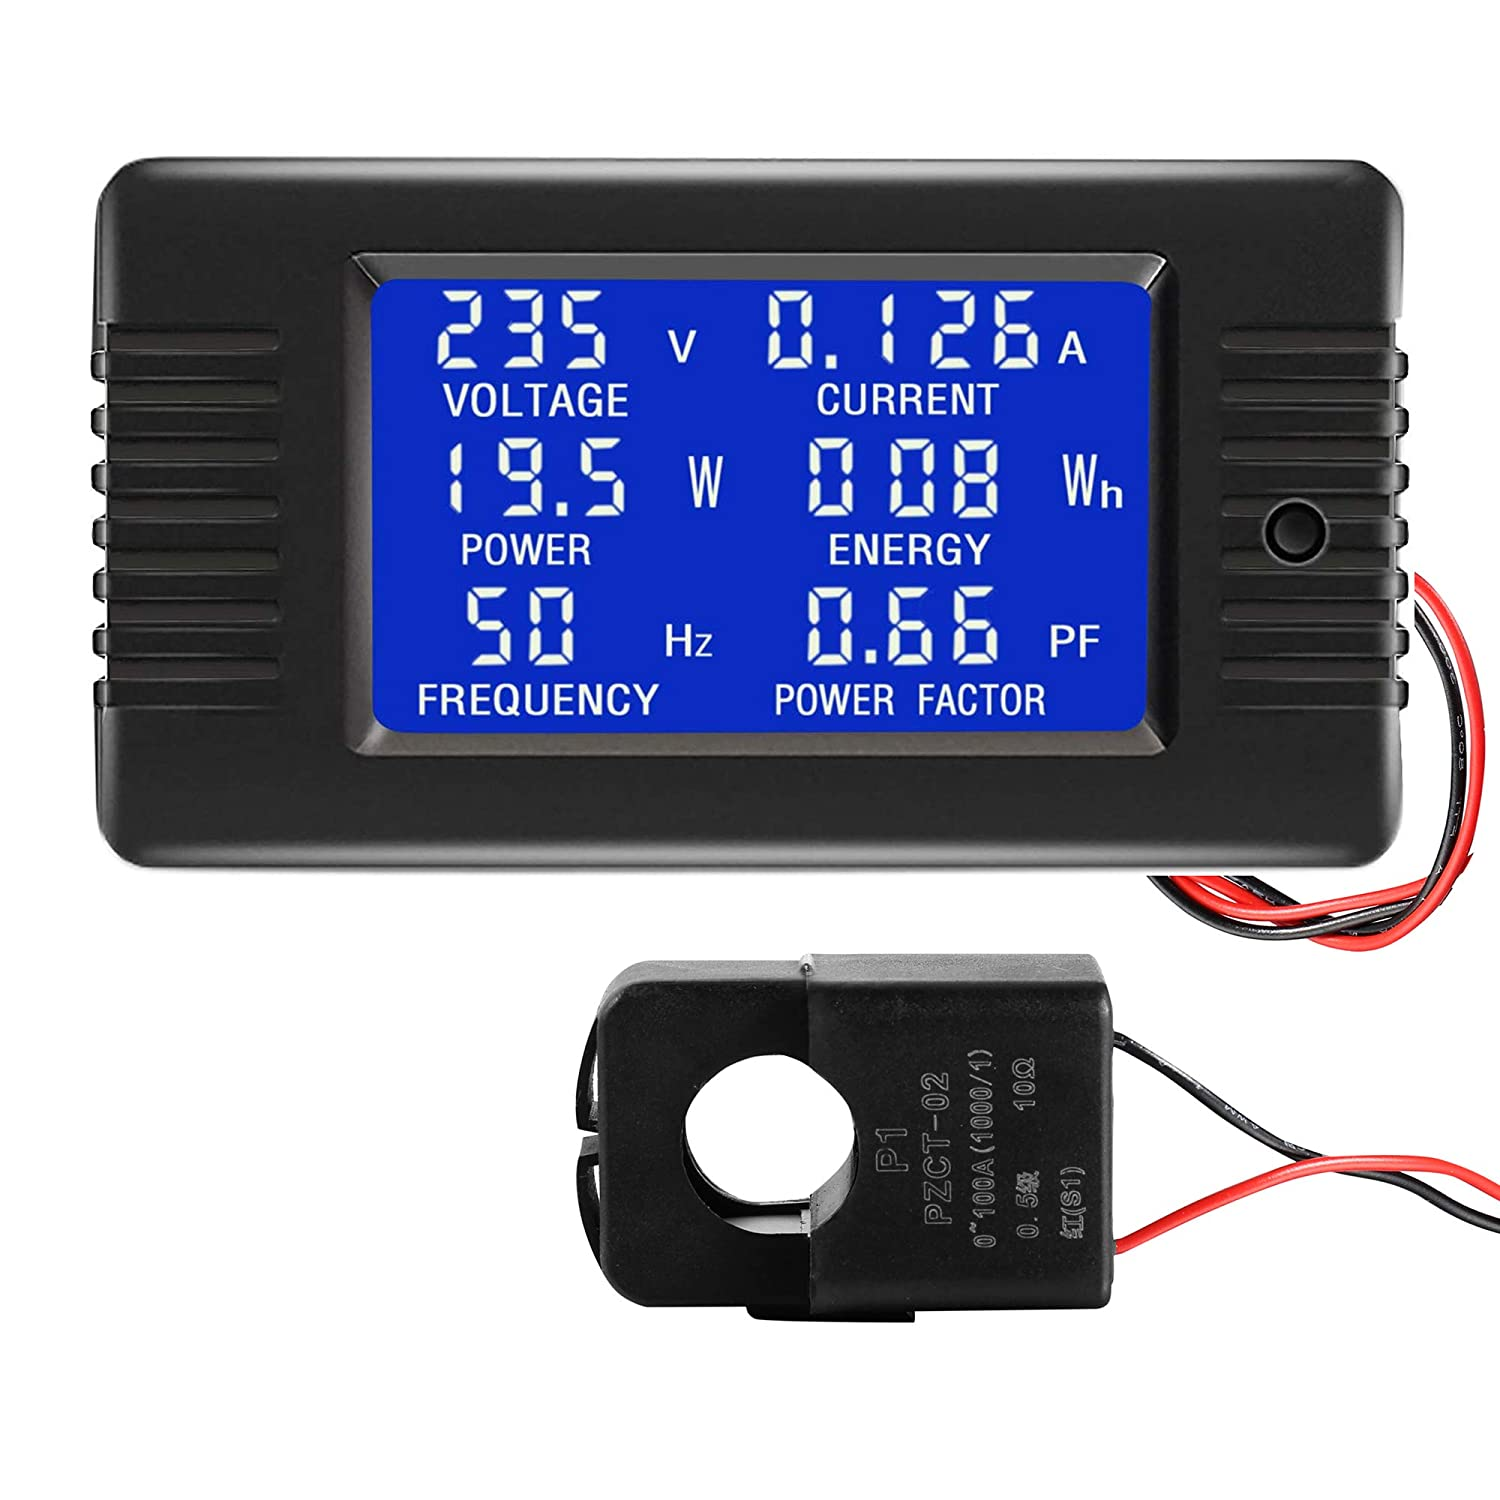 CrocSee AC 80-260V 100A CRS-022B LCD Display Digital Current Voltage Power Energy Frequency Power Factor Multimeter Ammeter Voltmeter with 100A Split Core Current Transformer